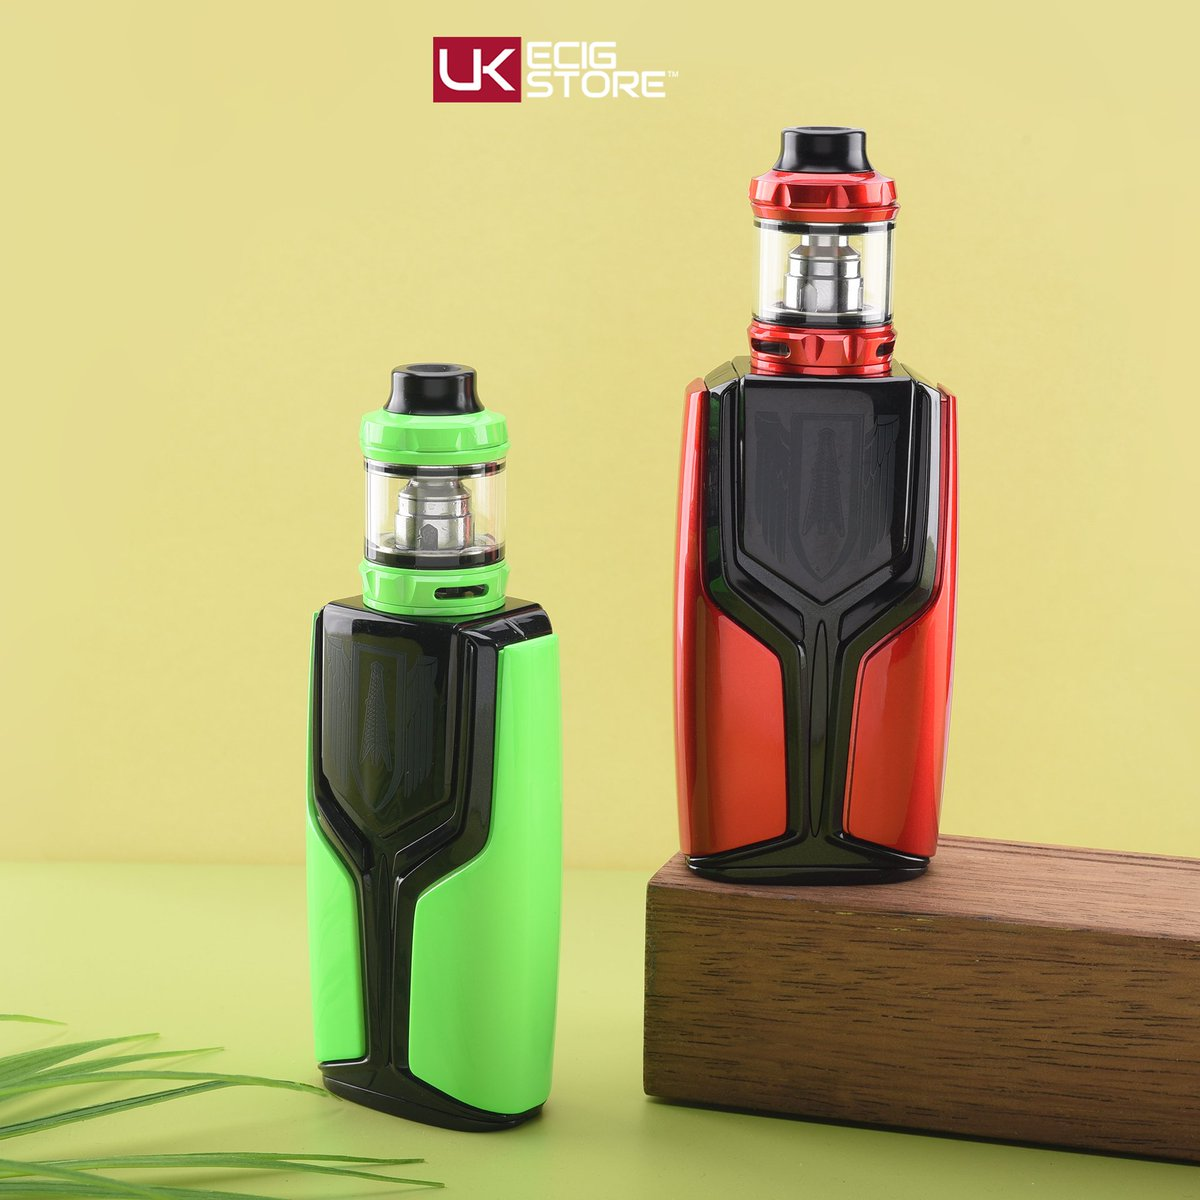 hight resolution of the flux mod is a 200w tc box mod and the tank that comes as part of this kit is the flow pro sub ohm tank http ow ly e0so30karxb pic twitter com